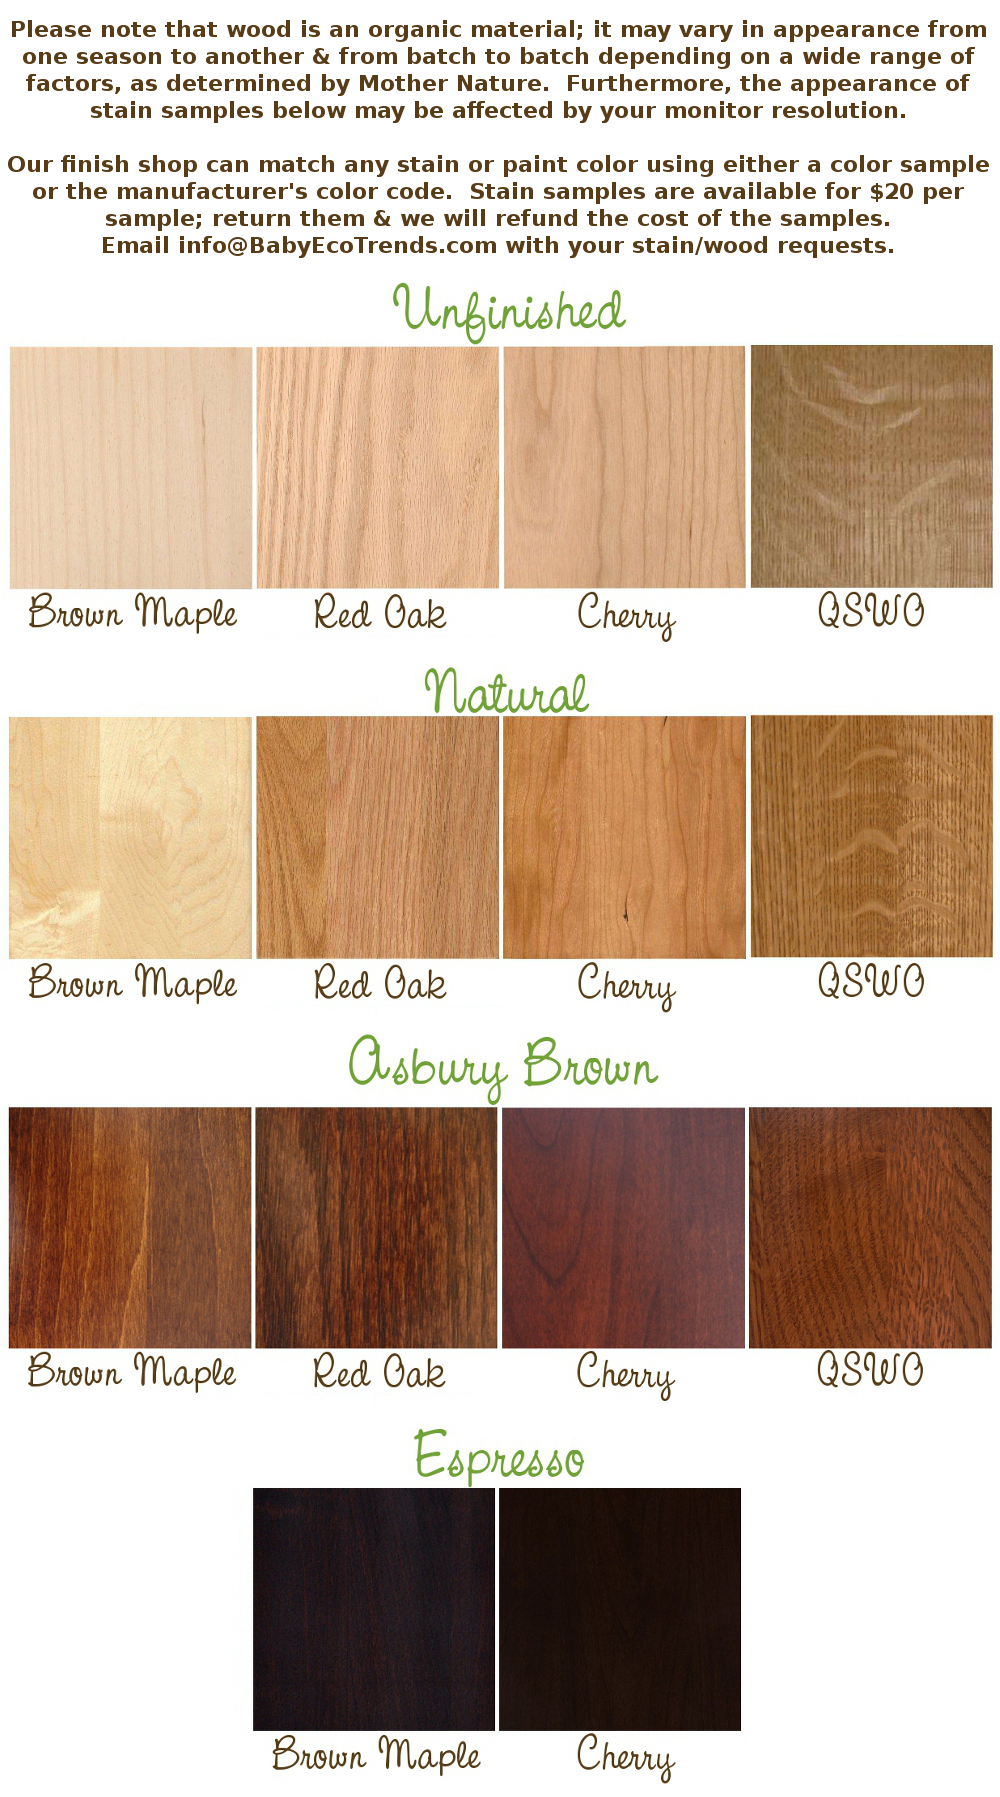 BabyEcoTrends.com Stain & Wood Samples